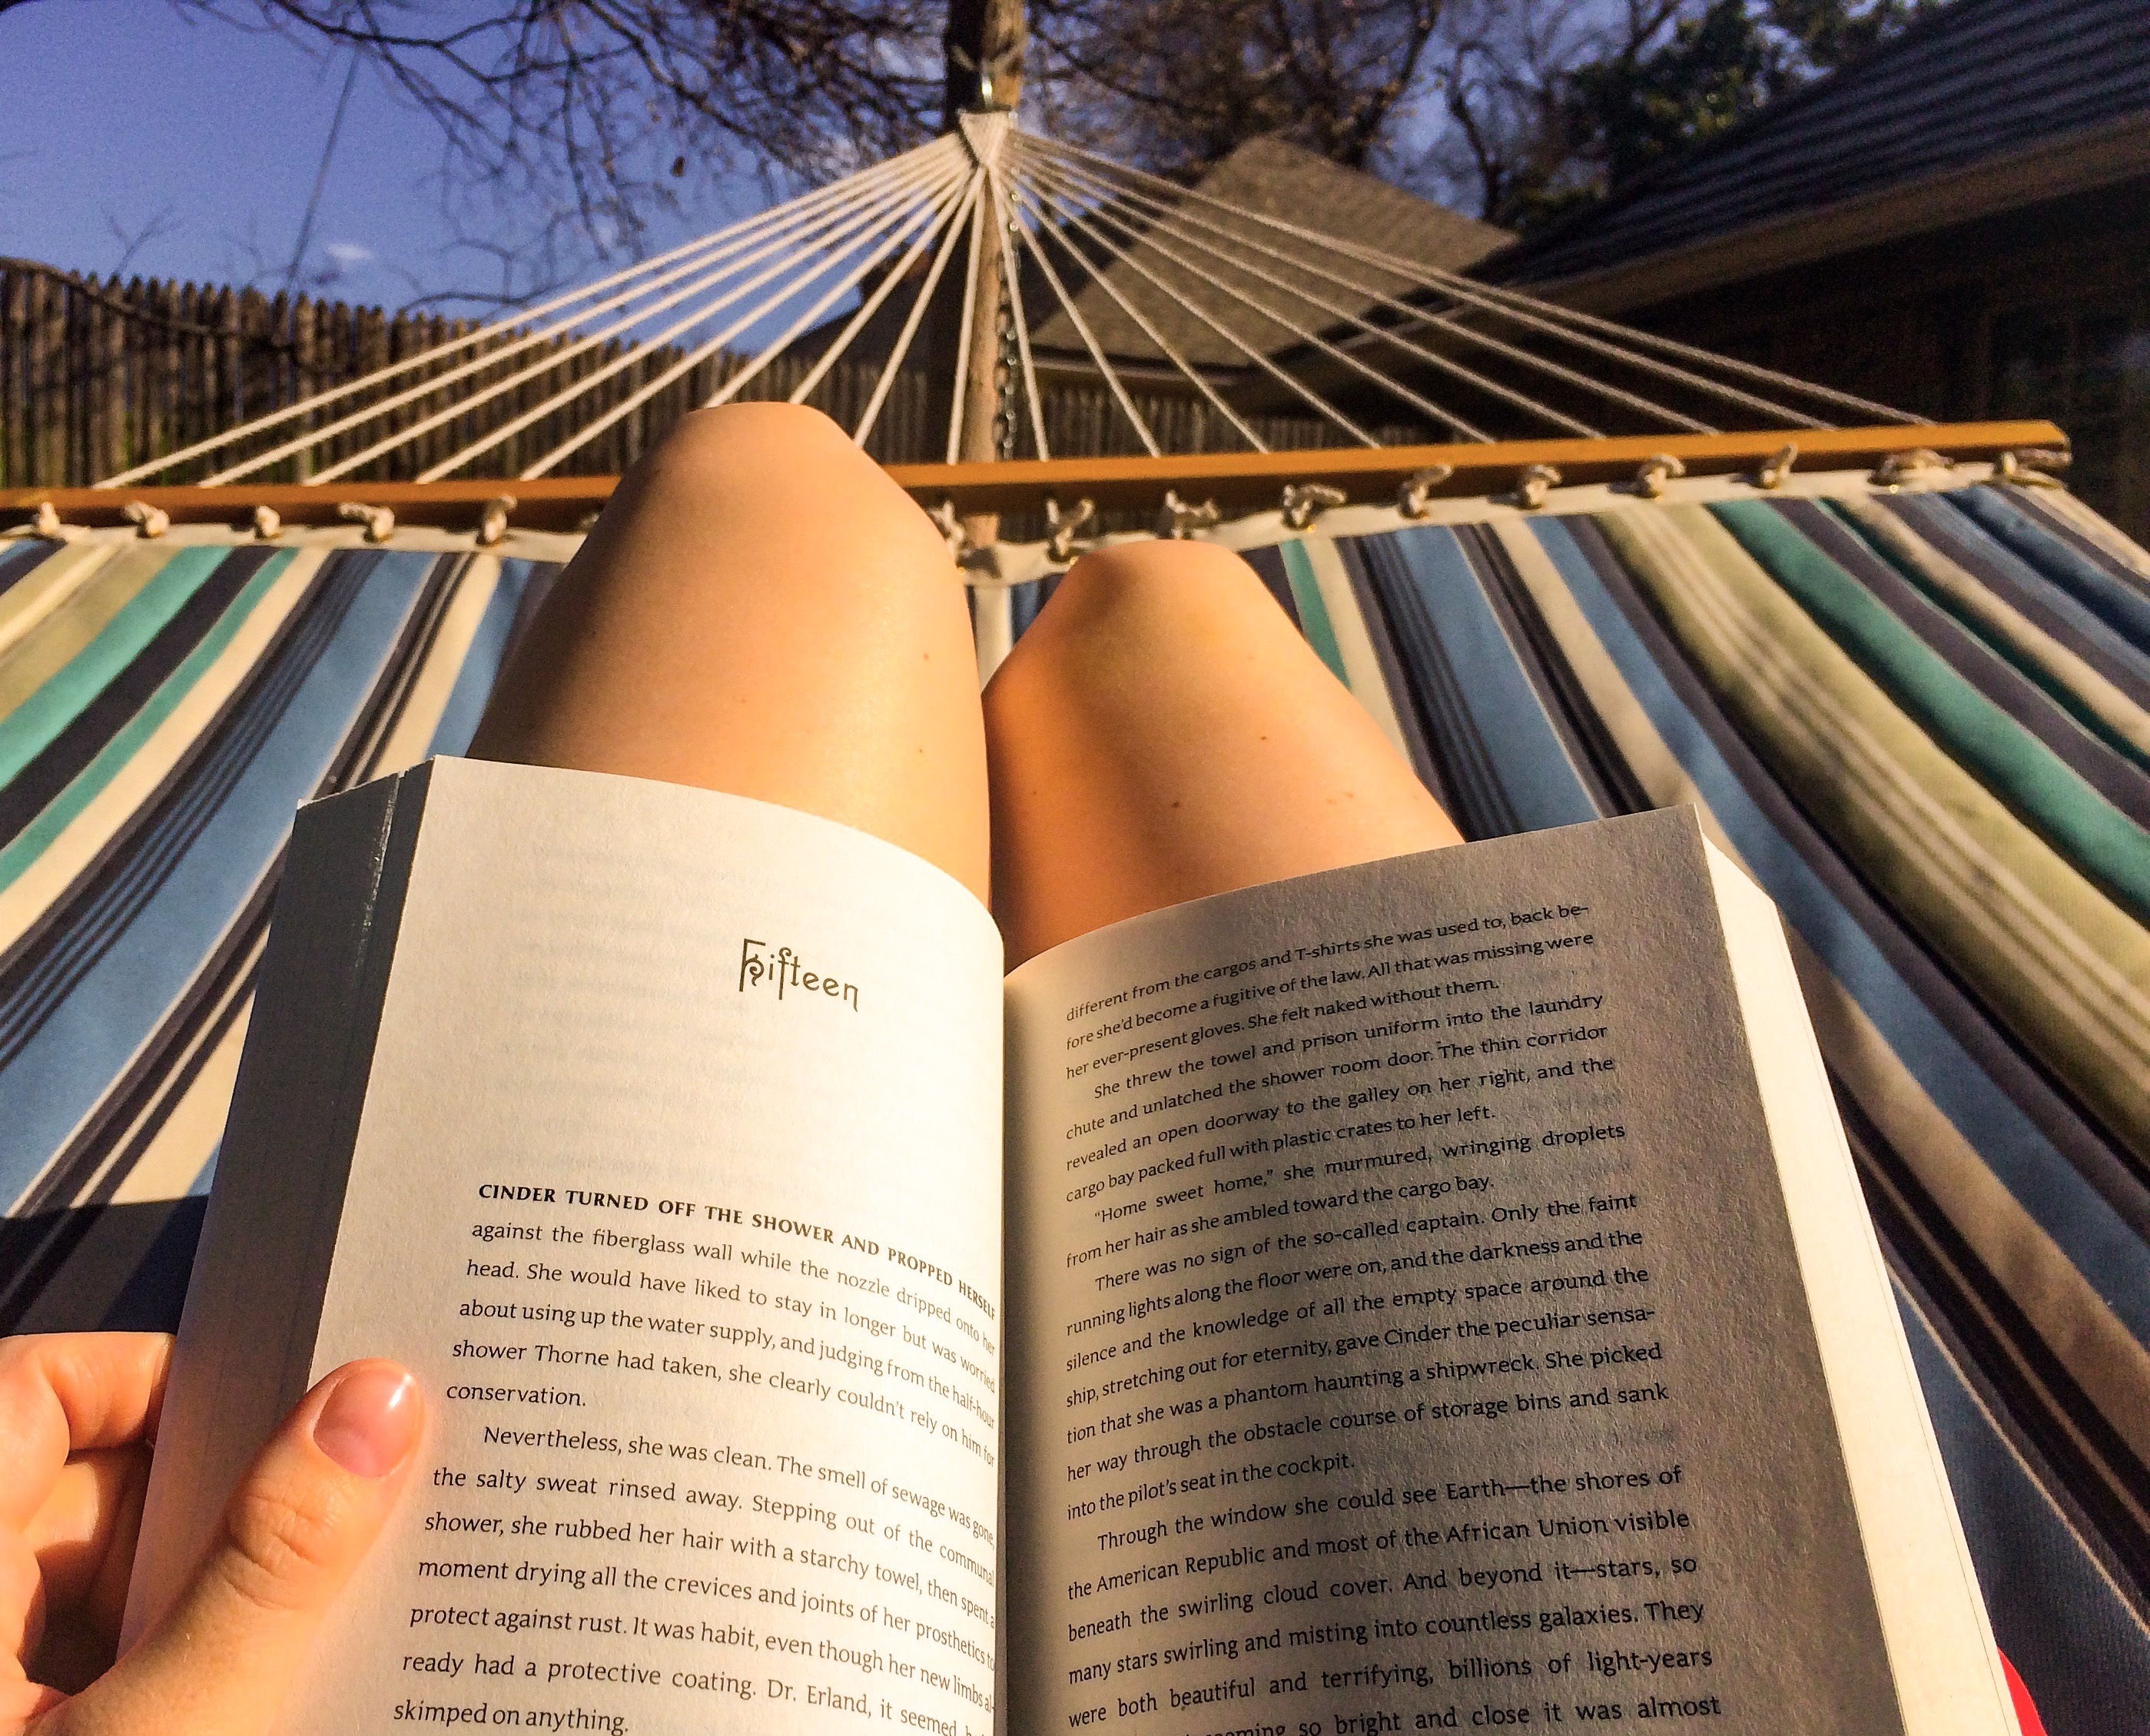 Girl Reading book on Hammock free image